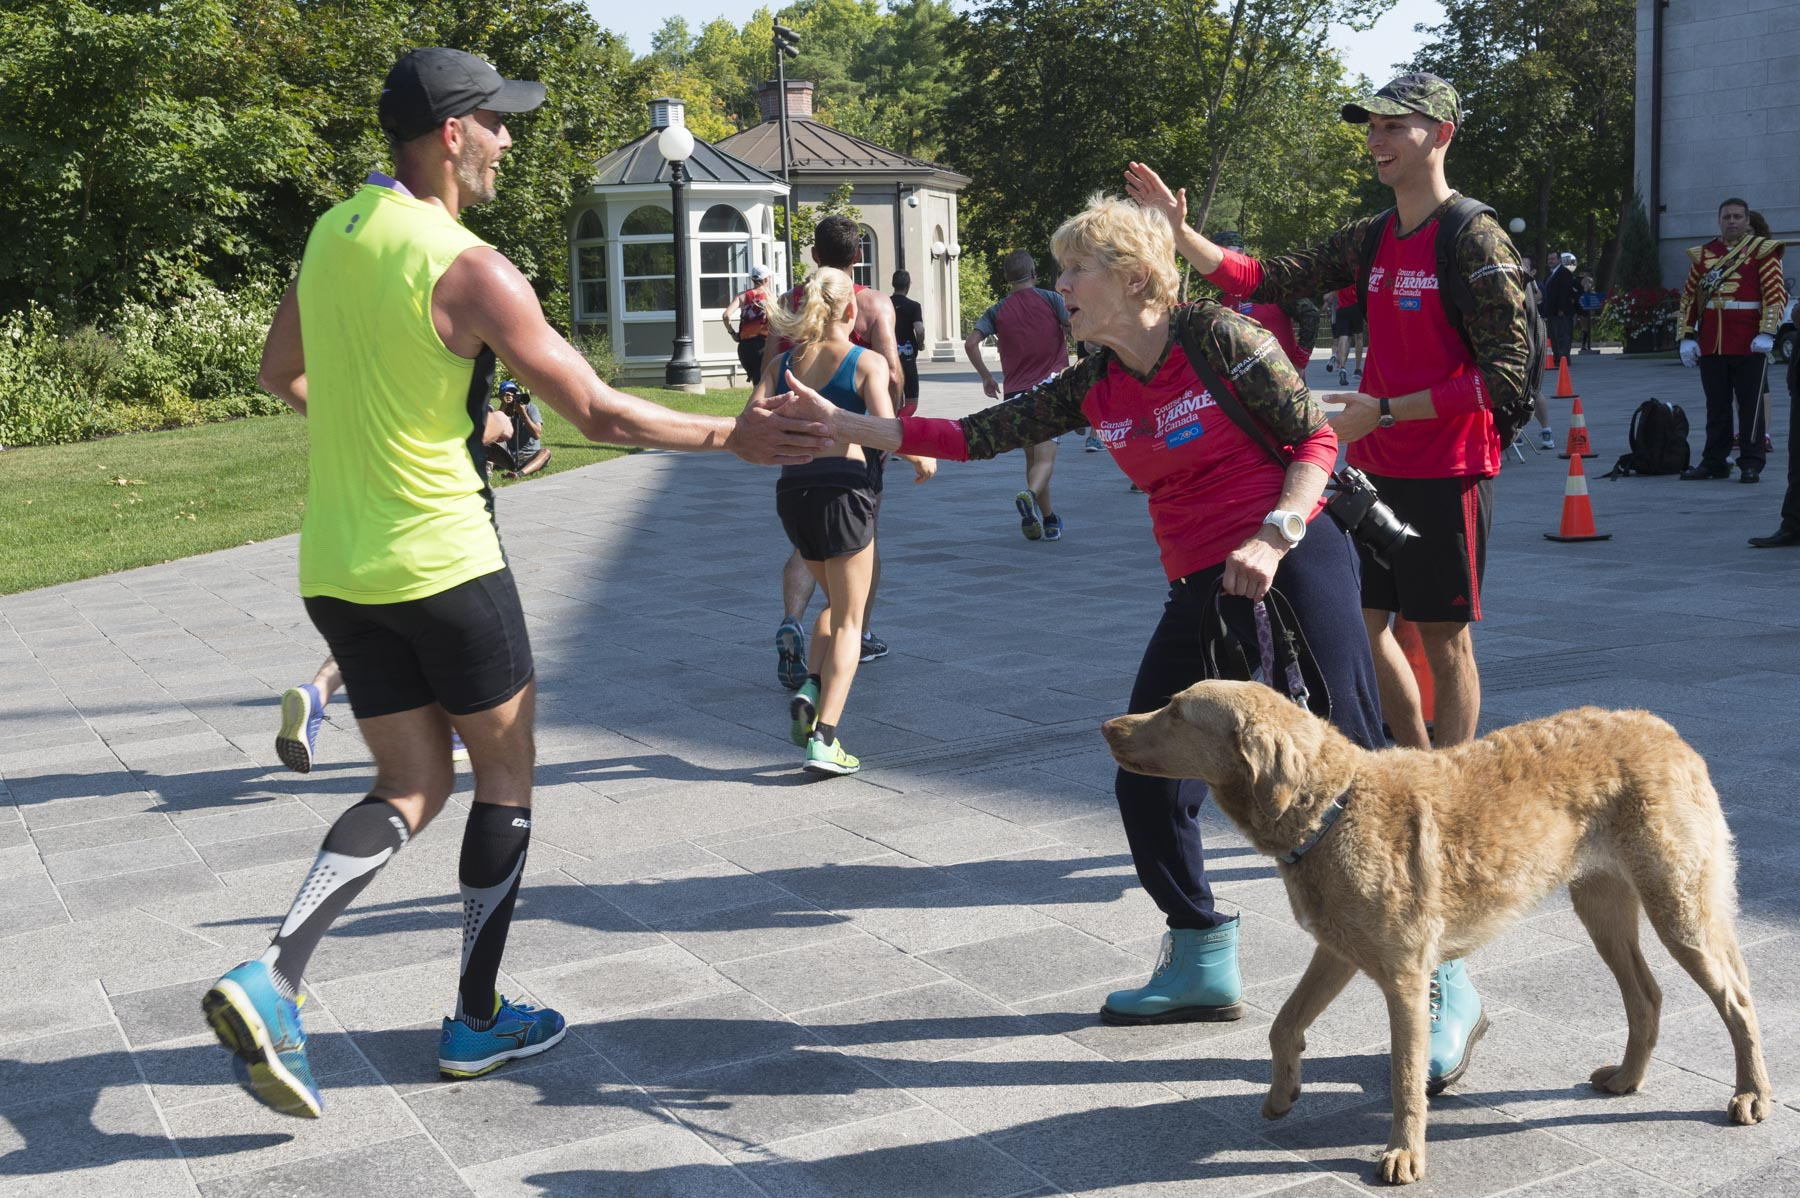 The half-marathon course led participants up the Main Drive and off the grounds of Rideau Hall via the Princess Gate.